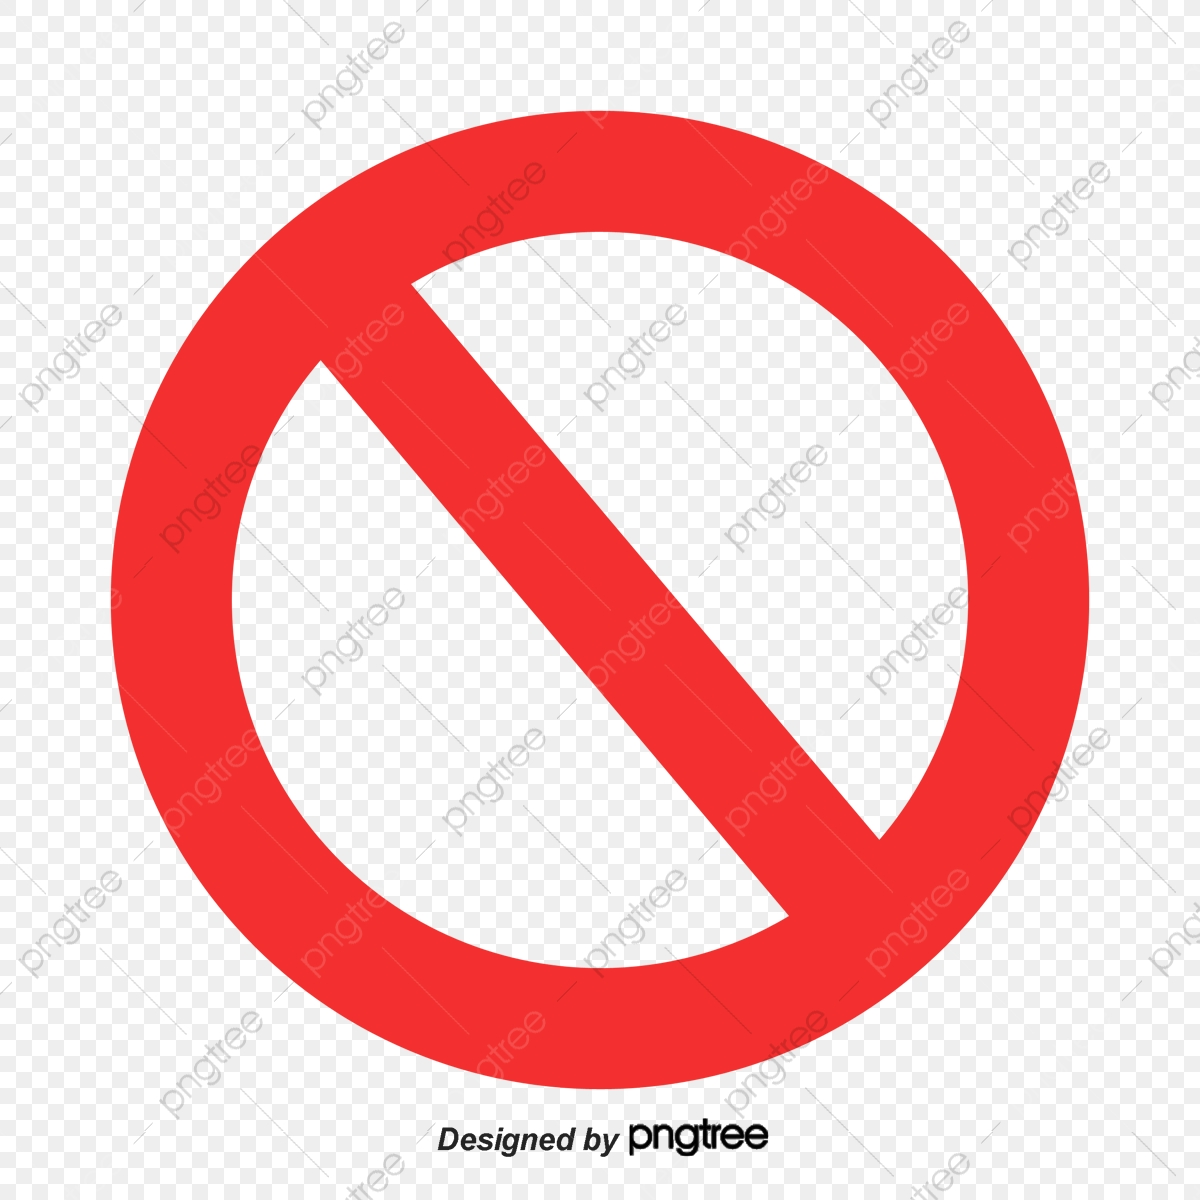 Ban, Label, Caveat PNG Transparent Clipart Image and PSD File for.